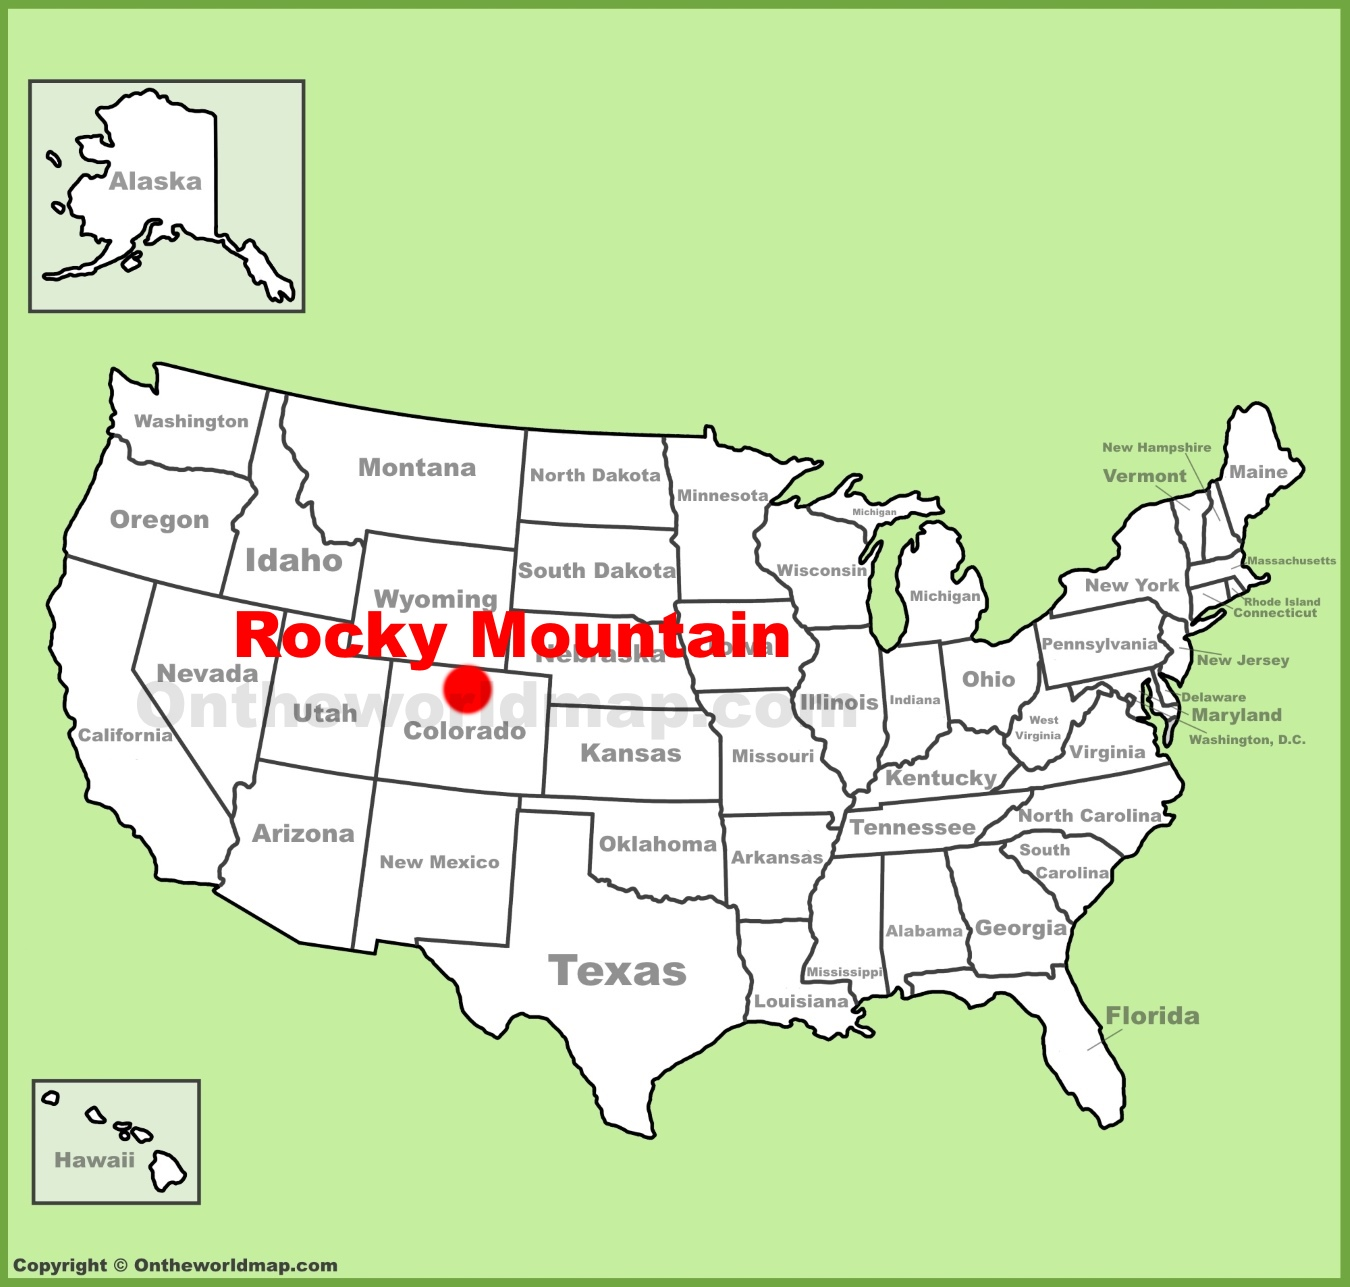 Rocky Mountain National Park Location On The U S Map